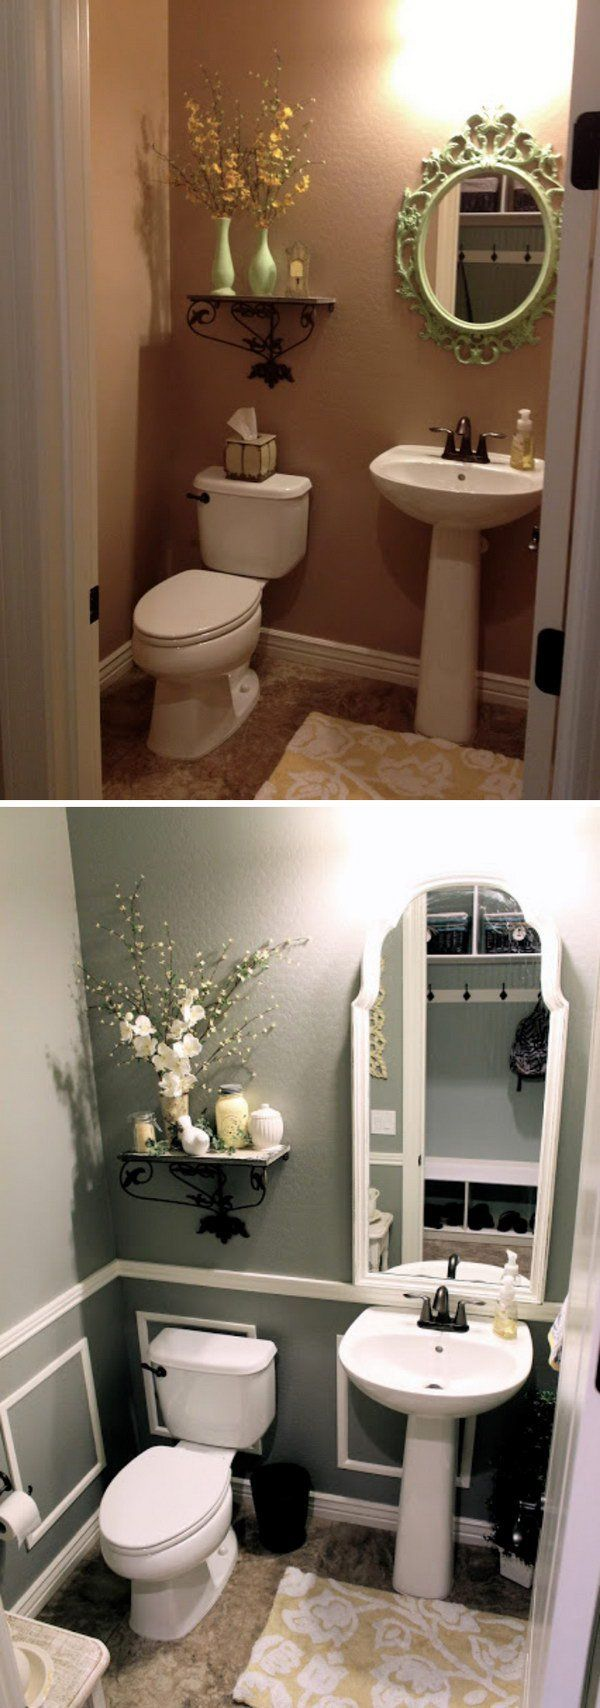 Best 25 small bathroom makeovers ideas only on pinterest small bathroom small bathrooms and - Small bathroom pics ...